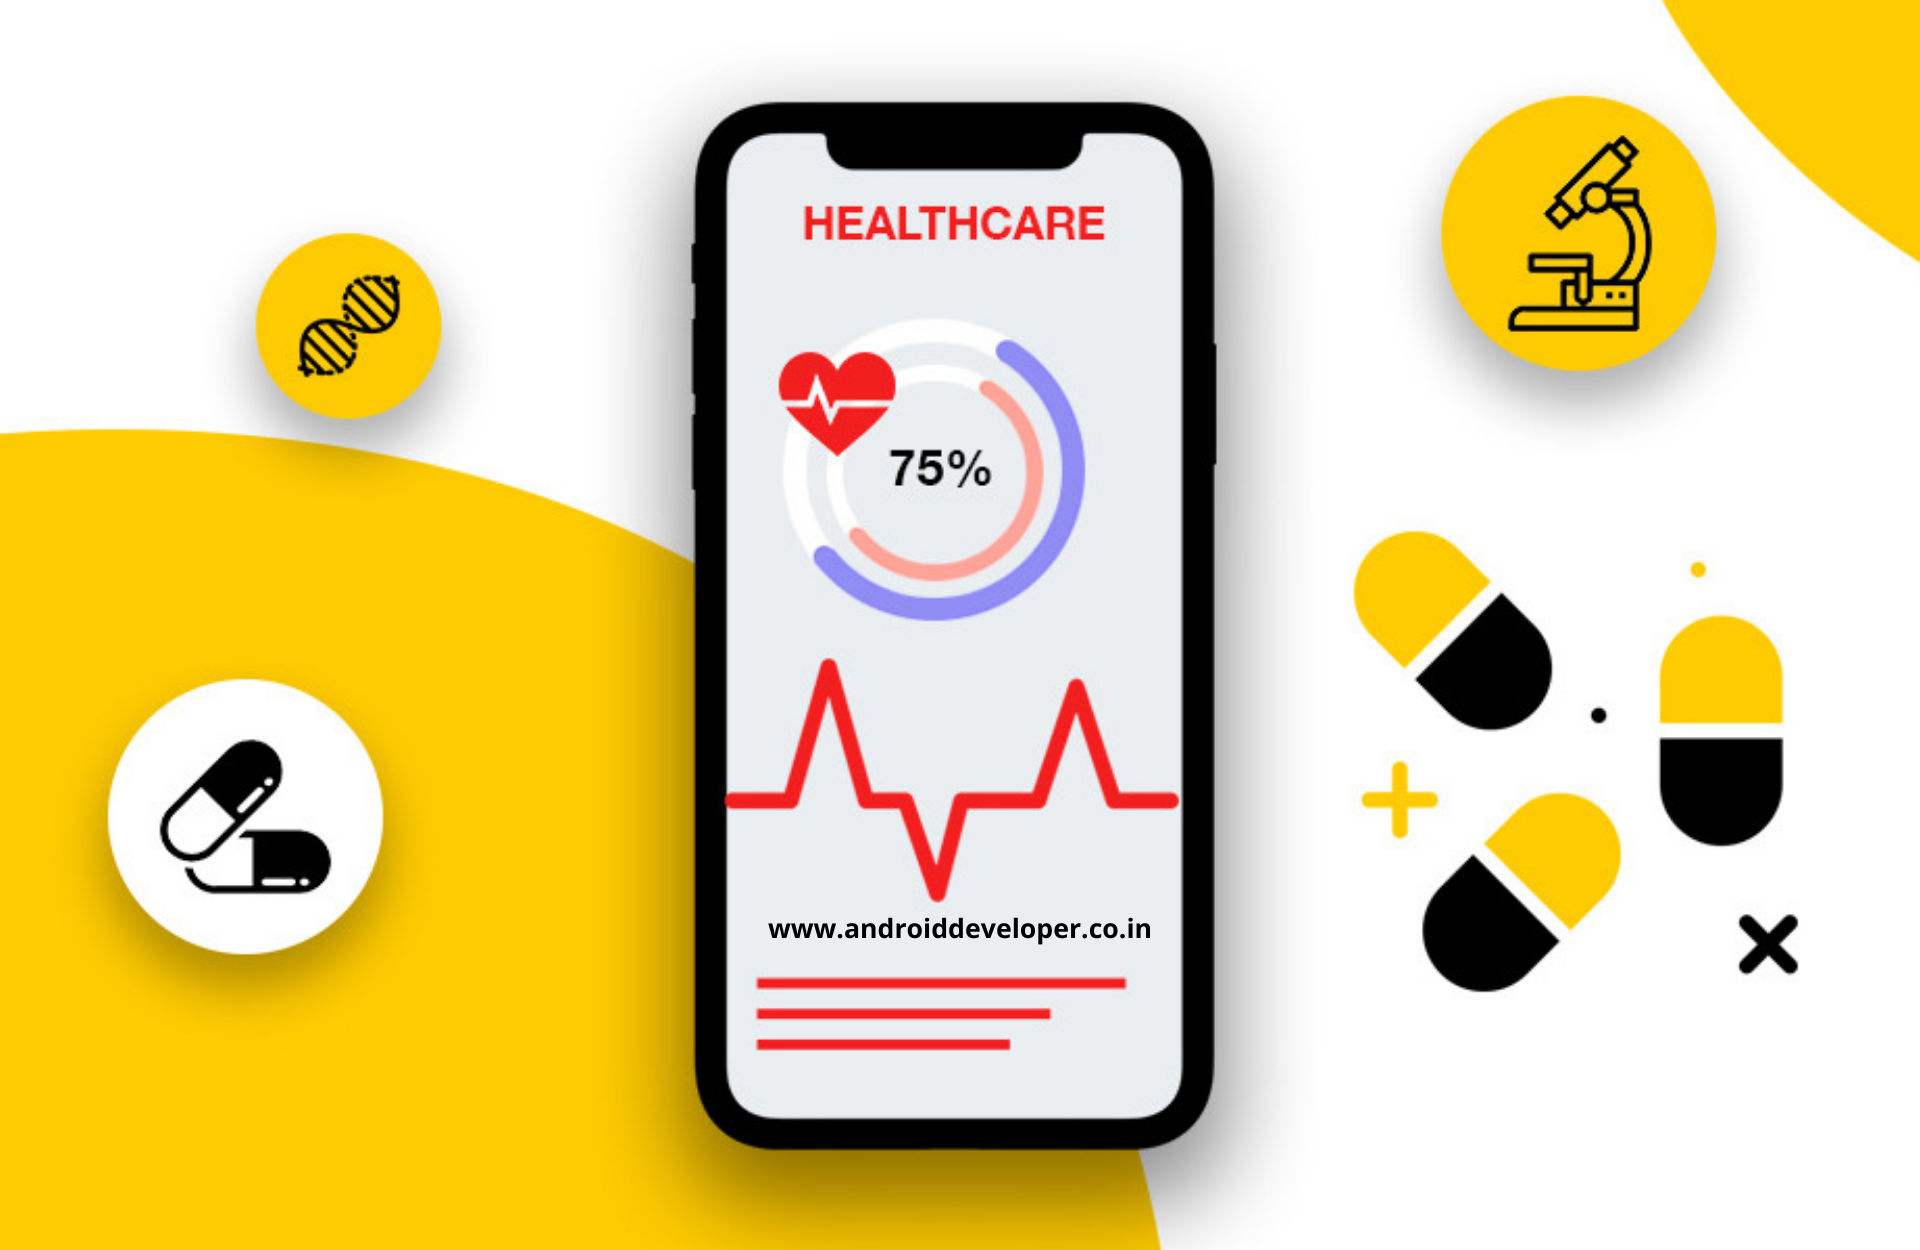 Healthcare Mobile App Development Best Practices You Should Follow